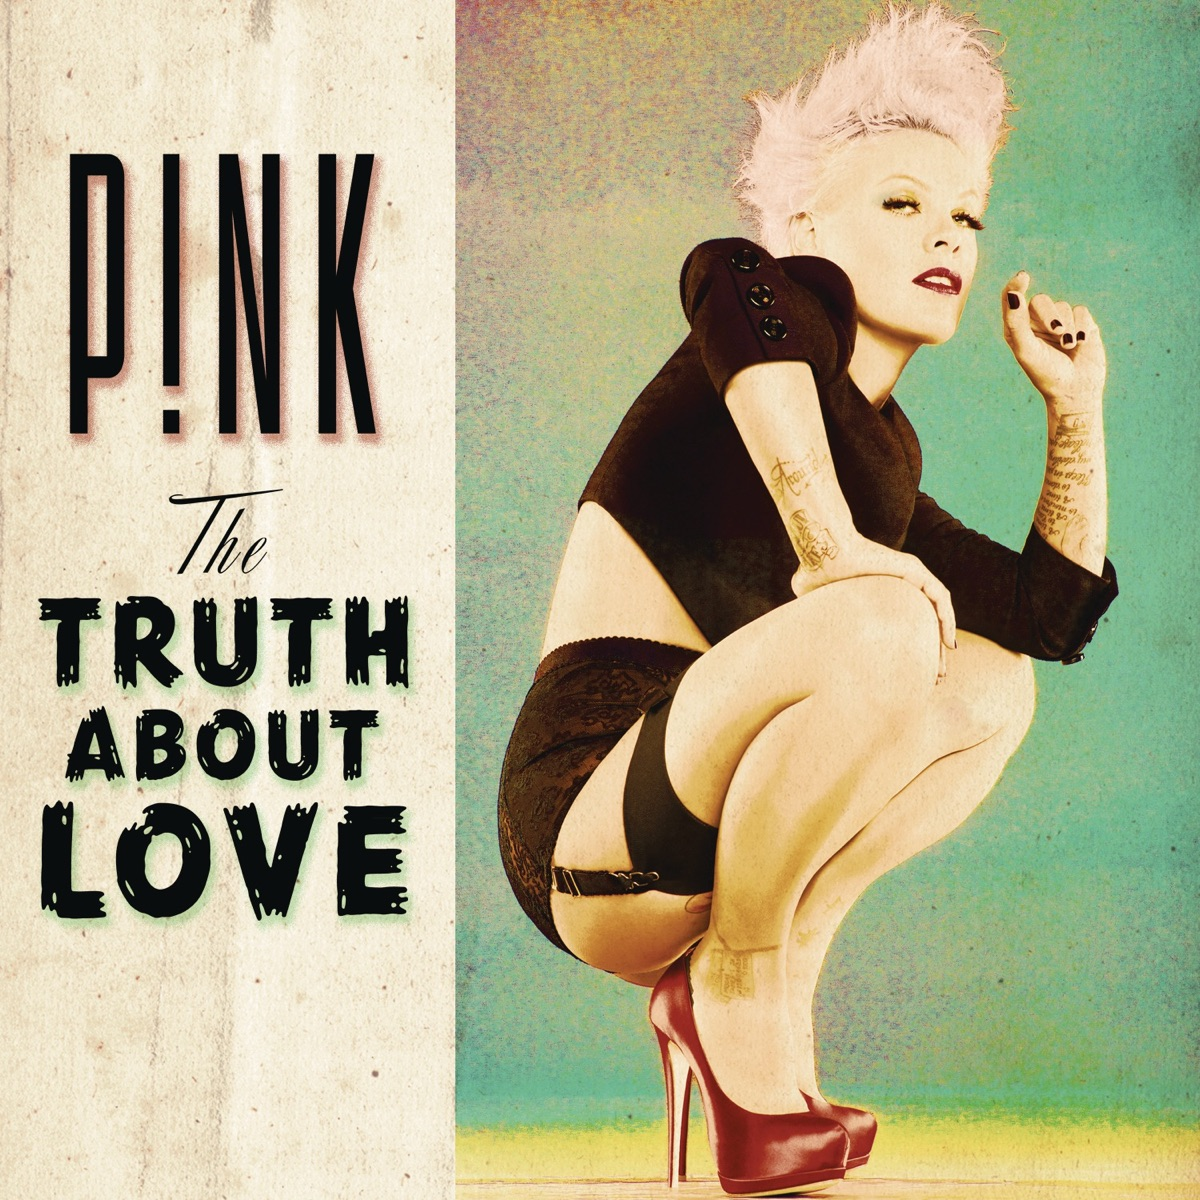 The Truth About Love Pnk CD cover